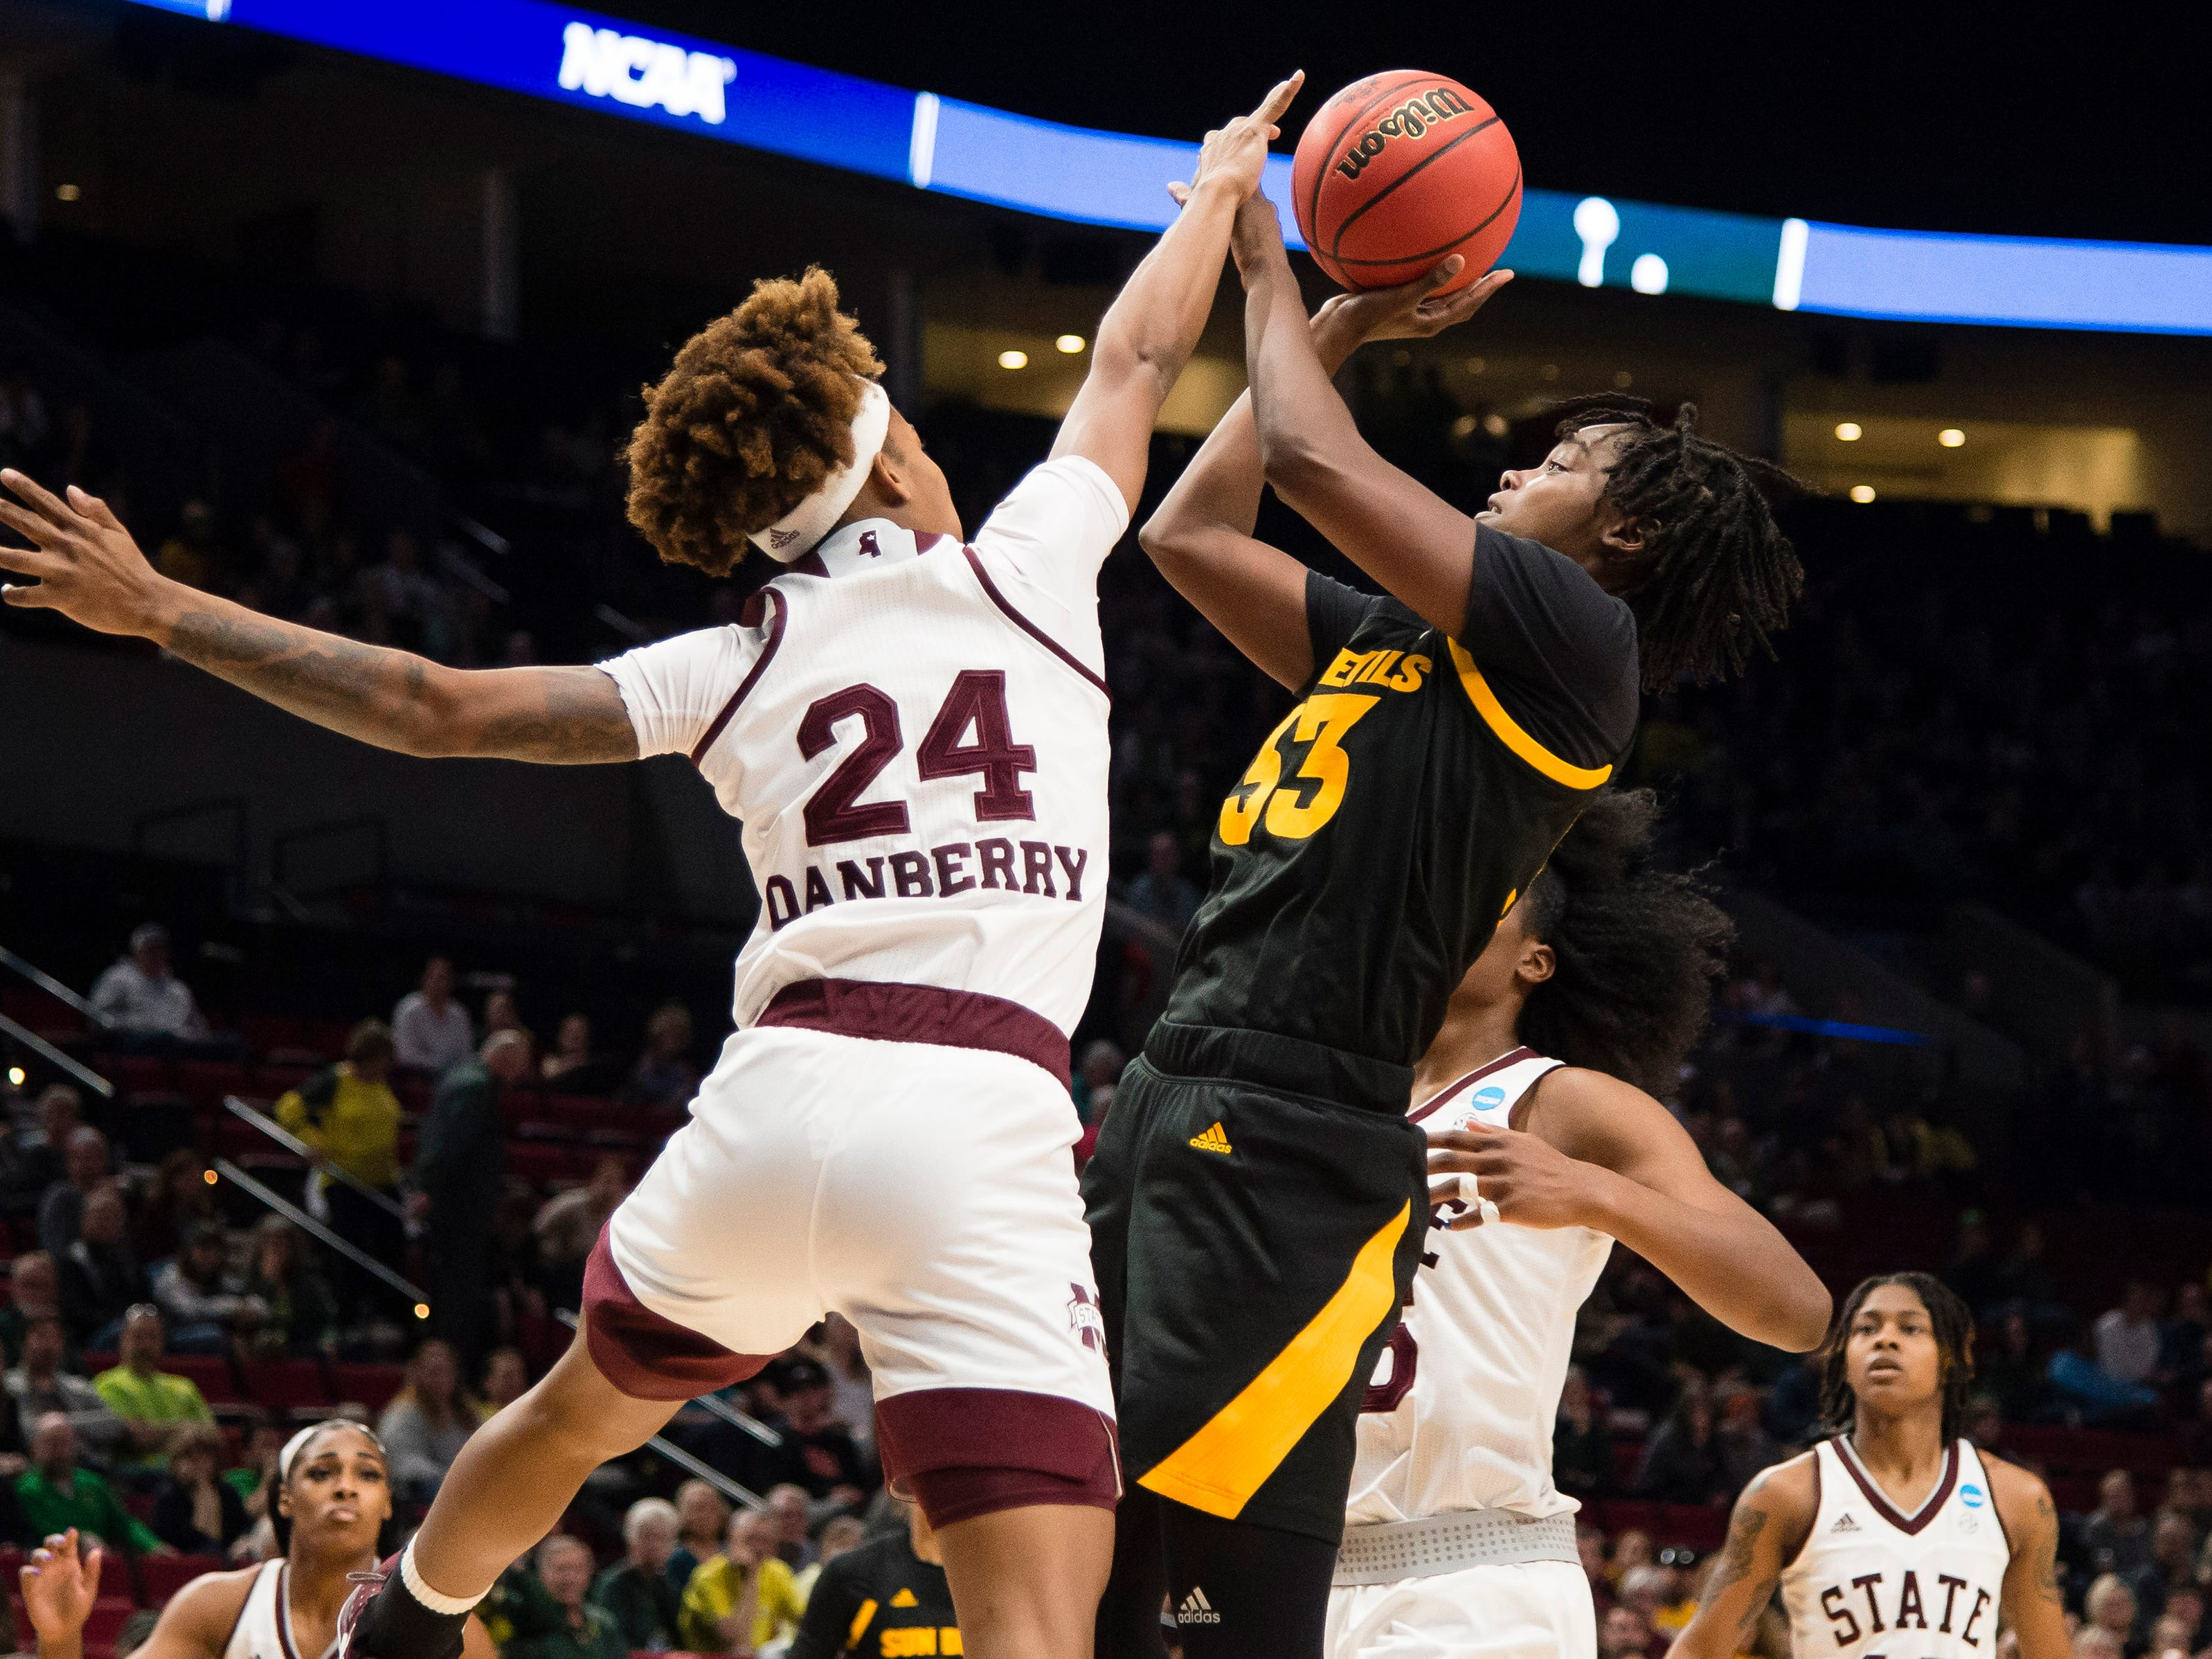 Mar 29, 2019; Portland, OR, USA; Arizona State Sun Devils center Charnea Johnson-Chapman (33) shoots a basket against Mississippi State Bulldogs guard Jordan Danberry (24) during the first half in the semifinals of the Portland regional in the women's 2019 NCAA Tournament at Moda Center.